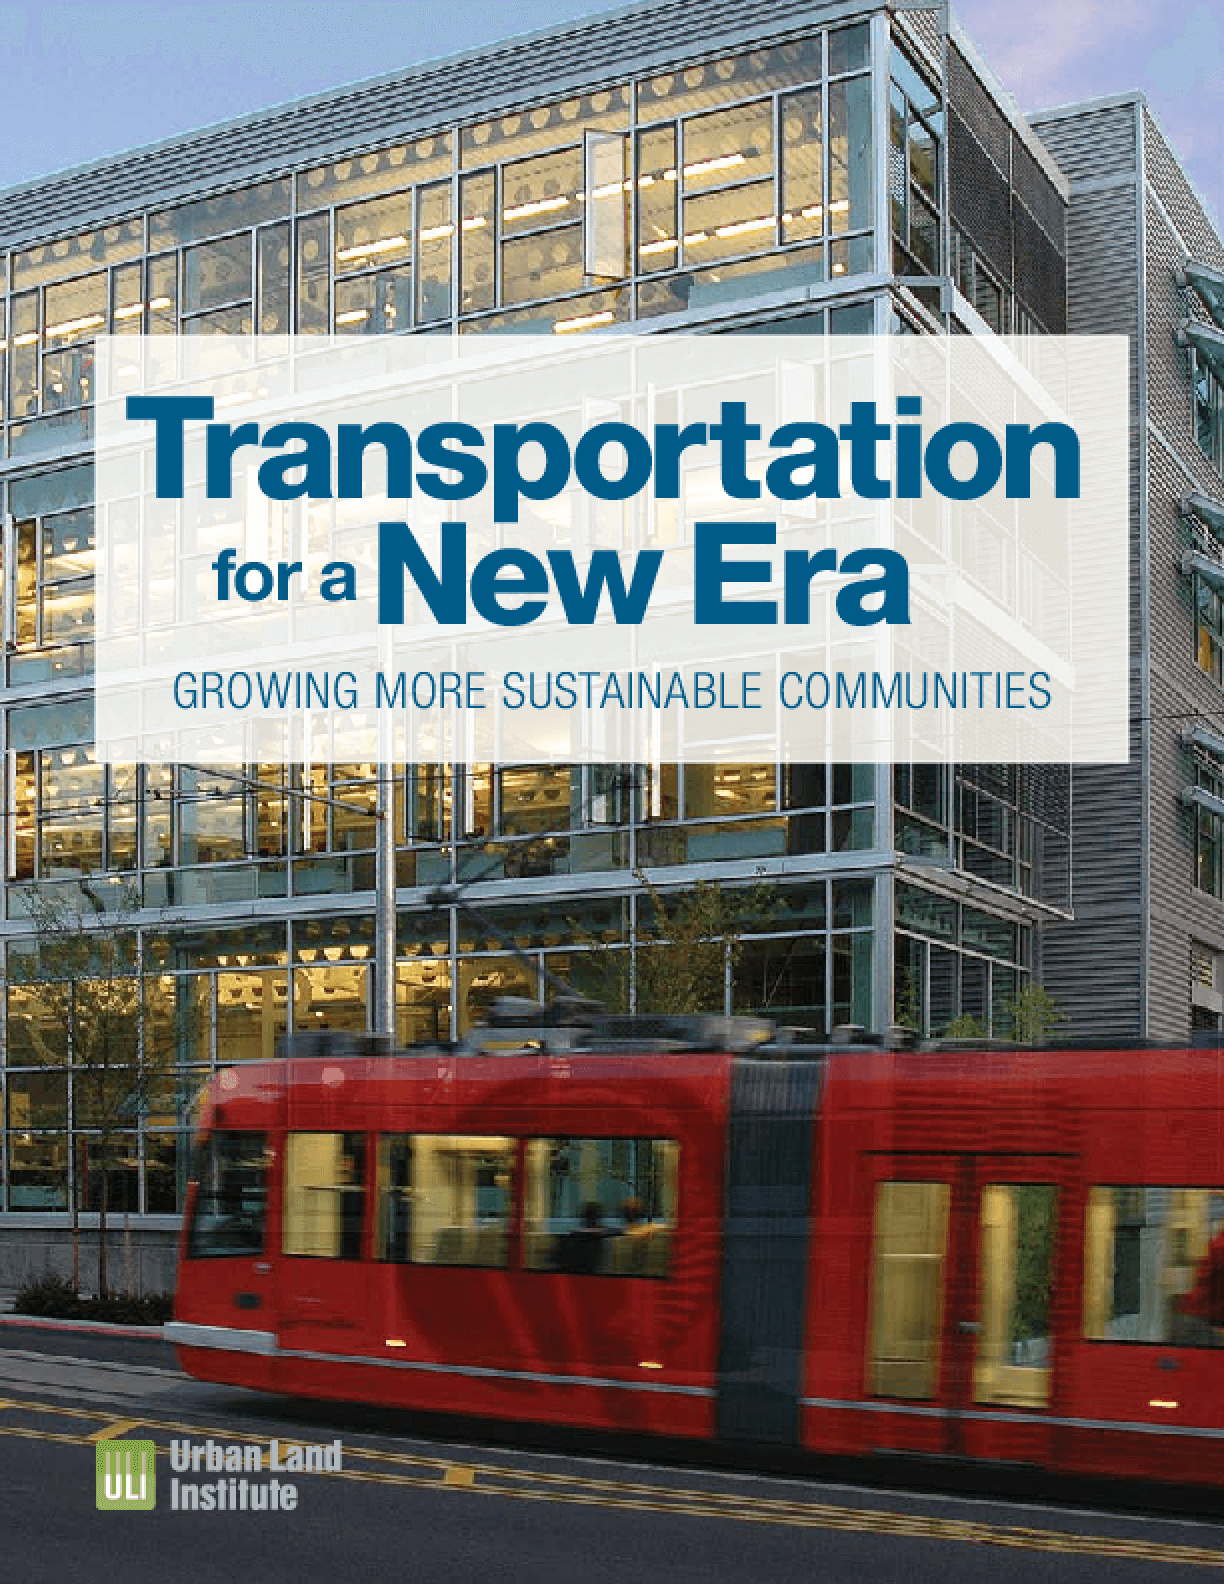 new era of transportation Statement by us transportation secretary anthony foxx: on friday, july 22, 2016, the united states and mexico exchanged diplomatic notes to bring our new air transport agreement into force.